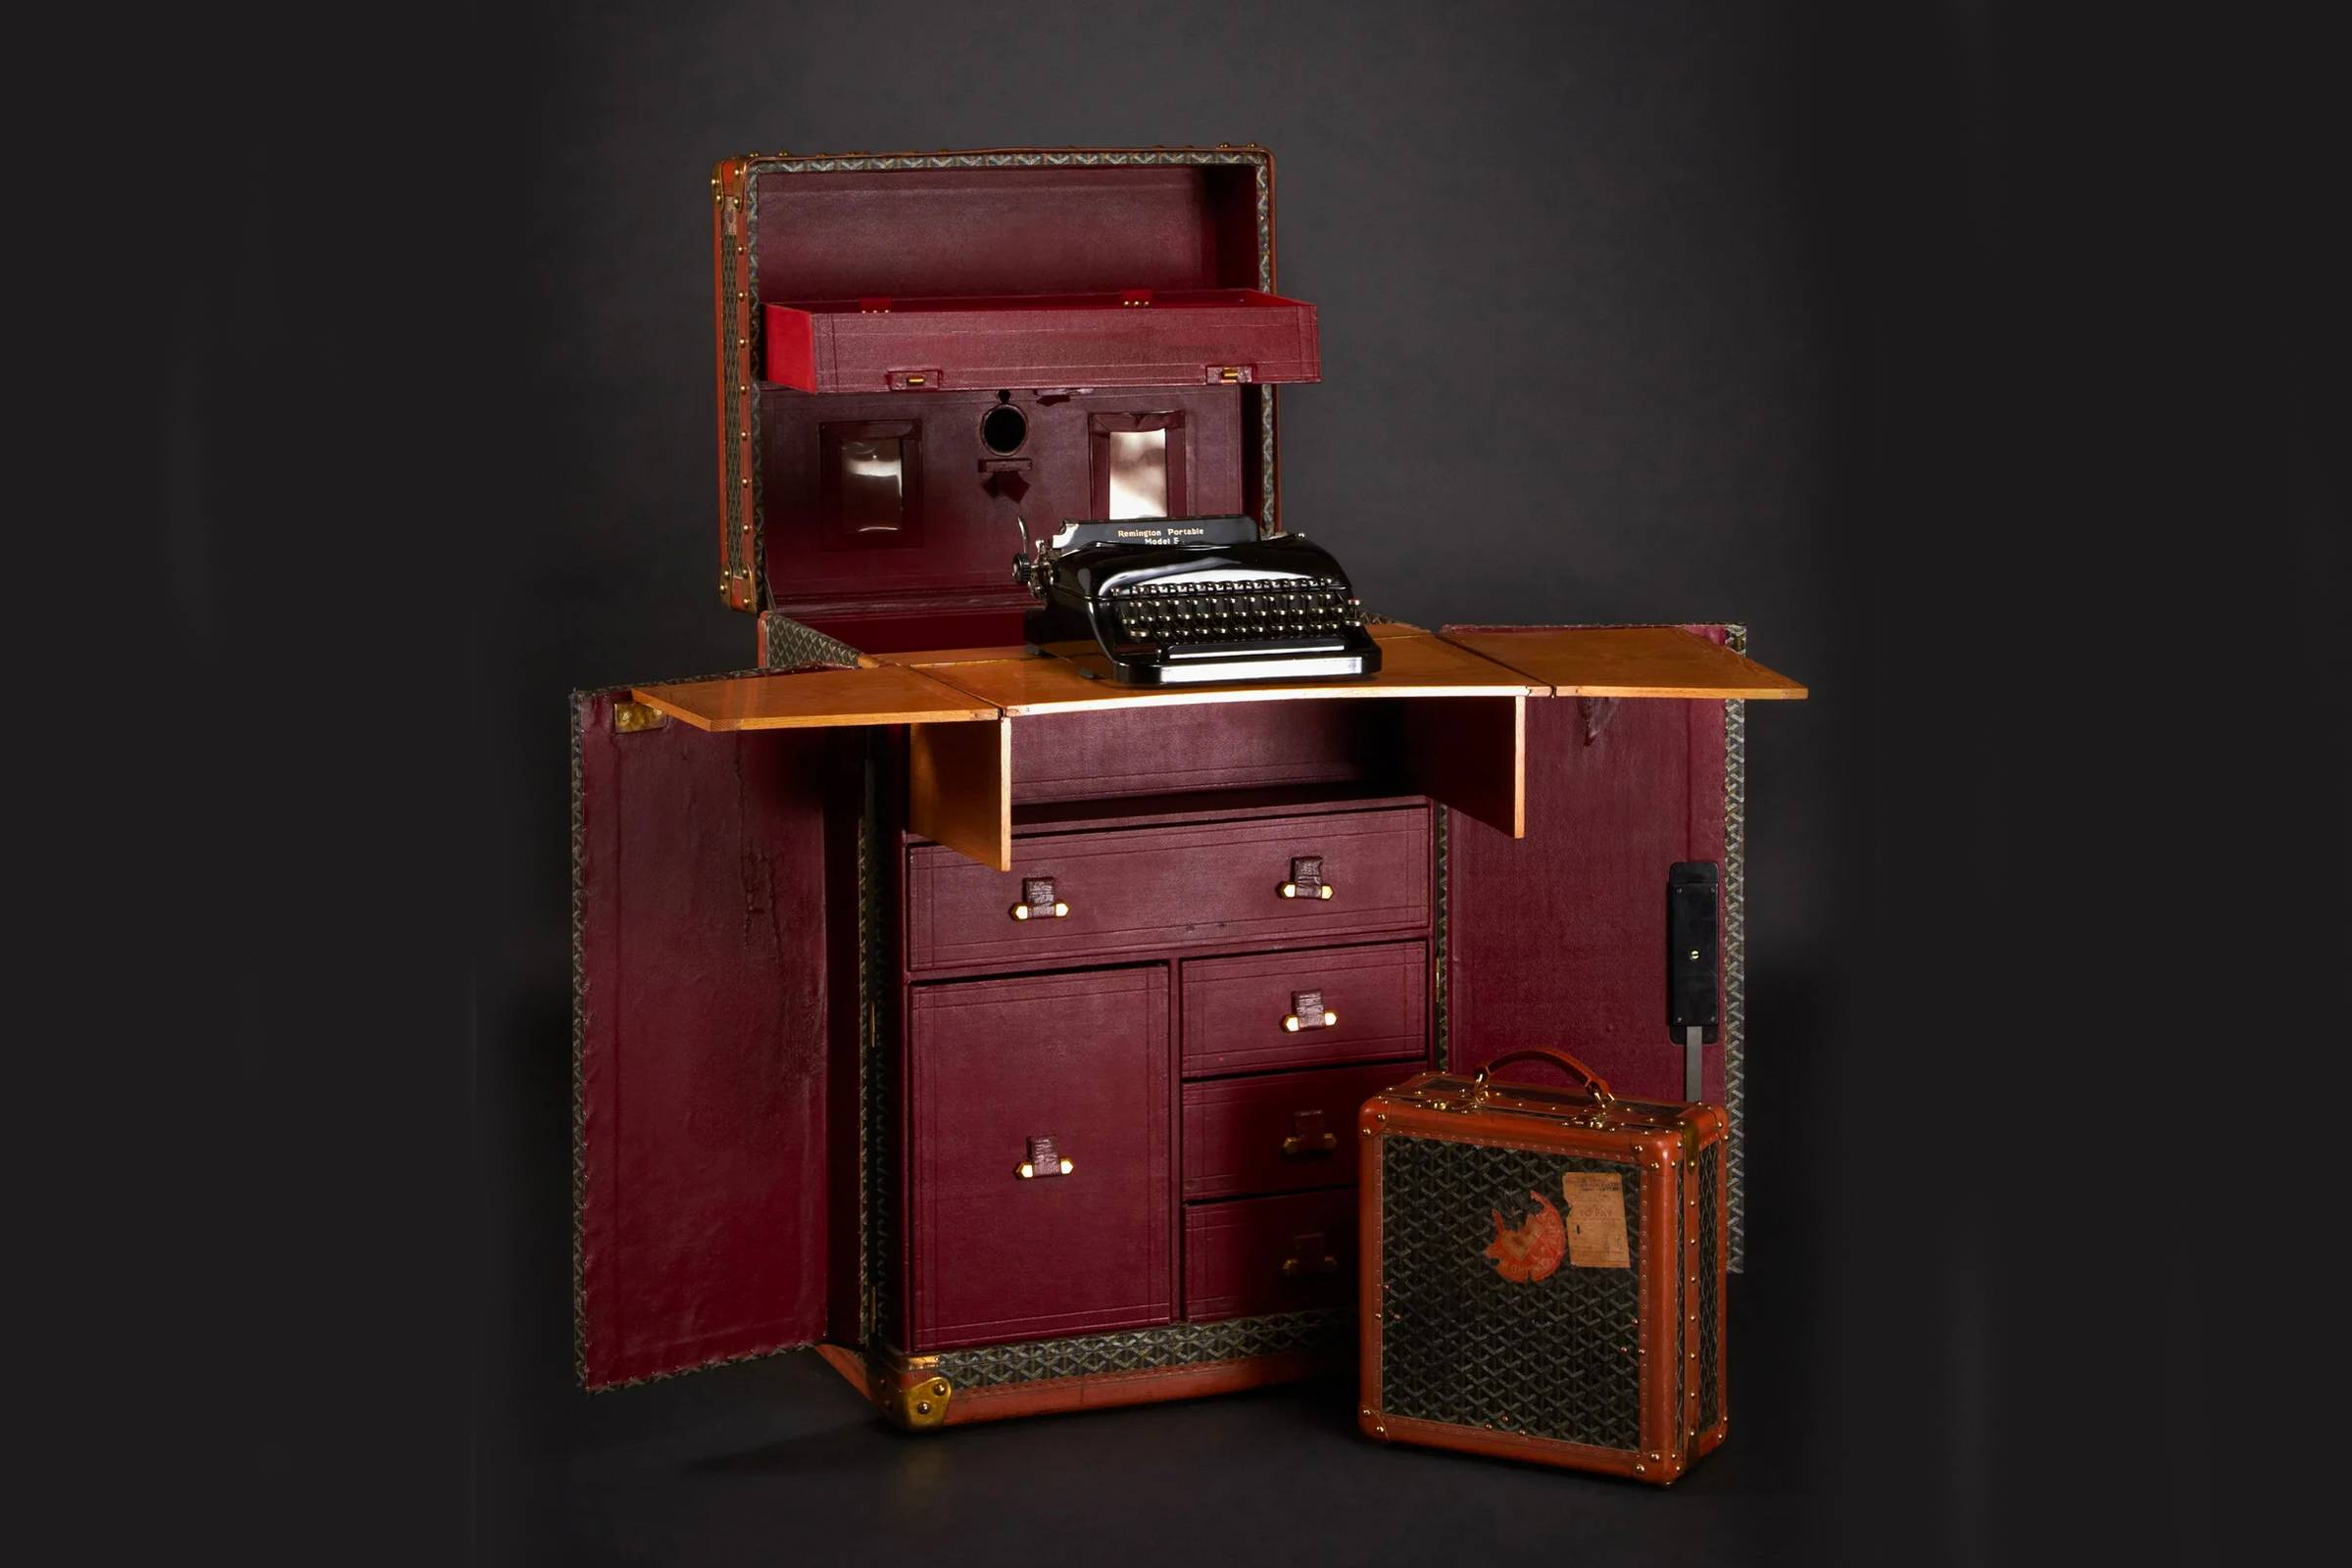 Sir Arthur Conan Doyle's custom Goyard trunk, which expands from a standard travel trunk into a full-size desk